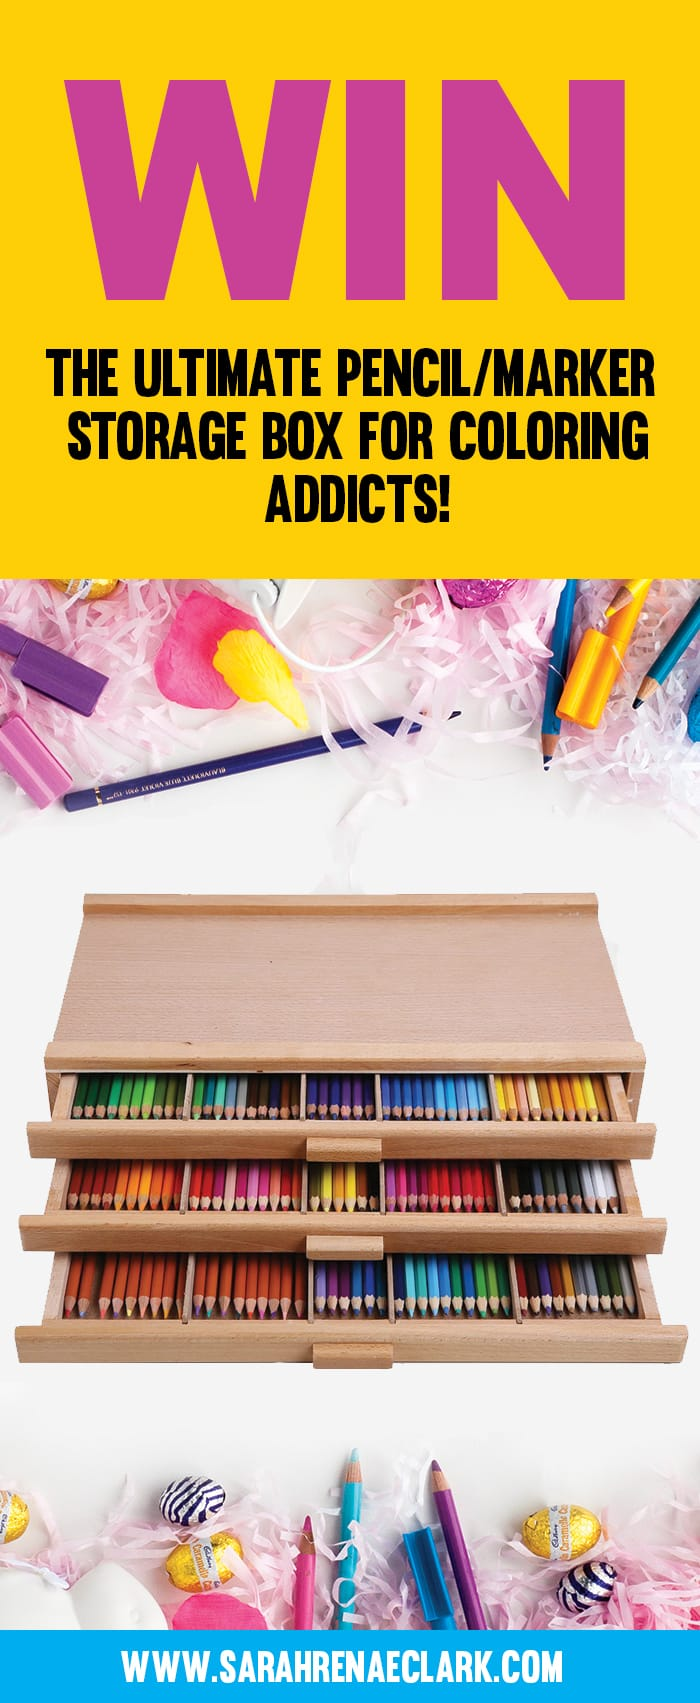 Win this awesome art and pencil storage in my latest giveaway! To make sure you always find my latest coloring giveaway, check out www.sarahrenaeclark.com/giveaways/